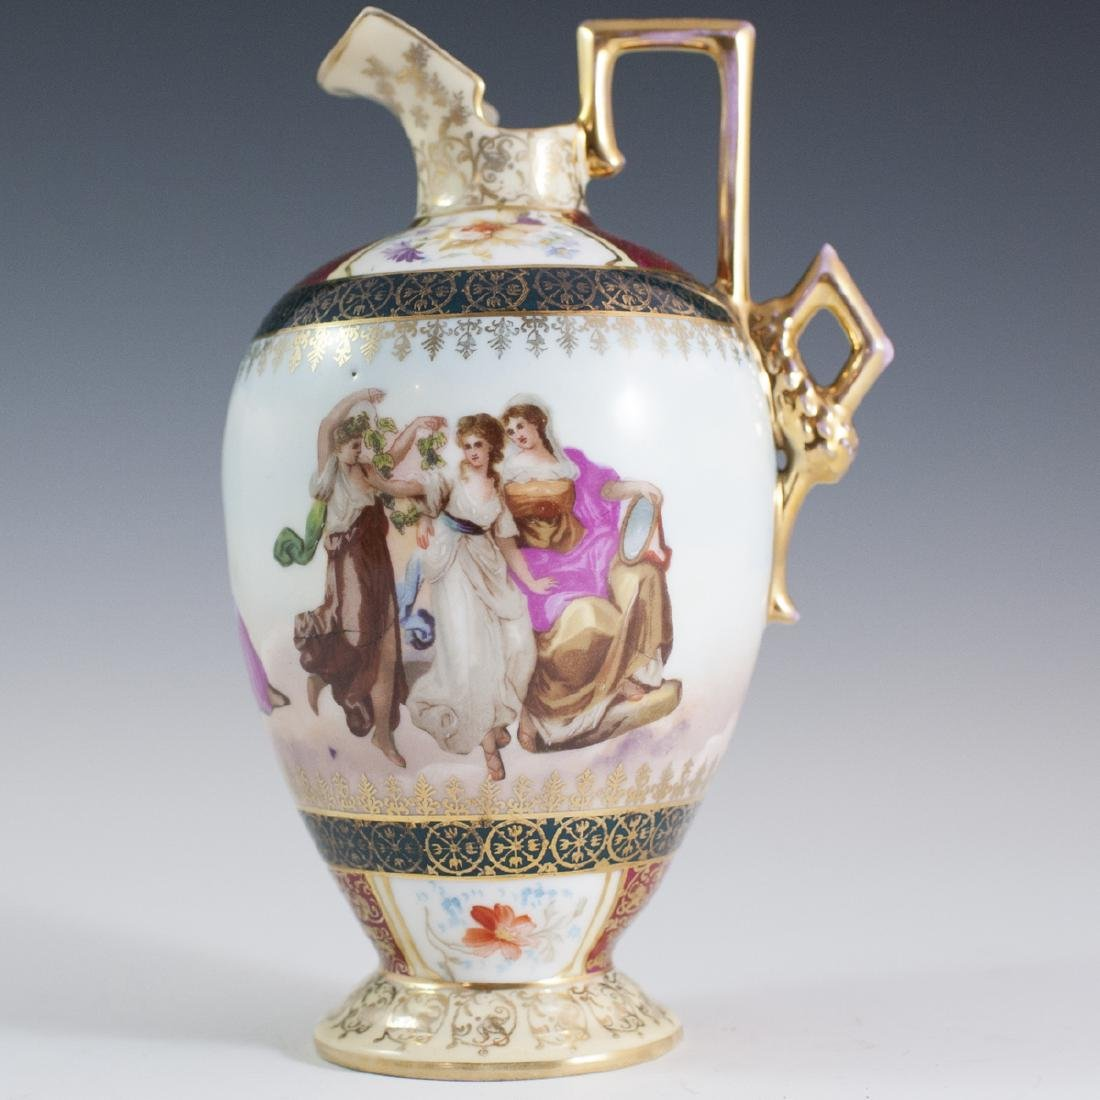 Royal Vienna Porcelain Ewer